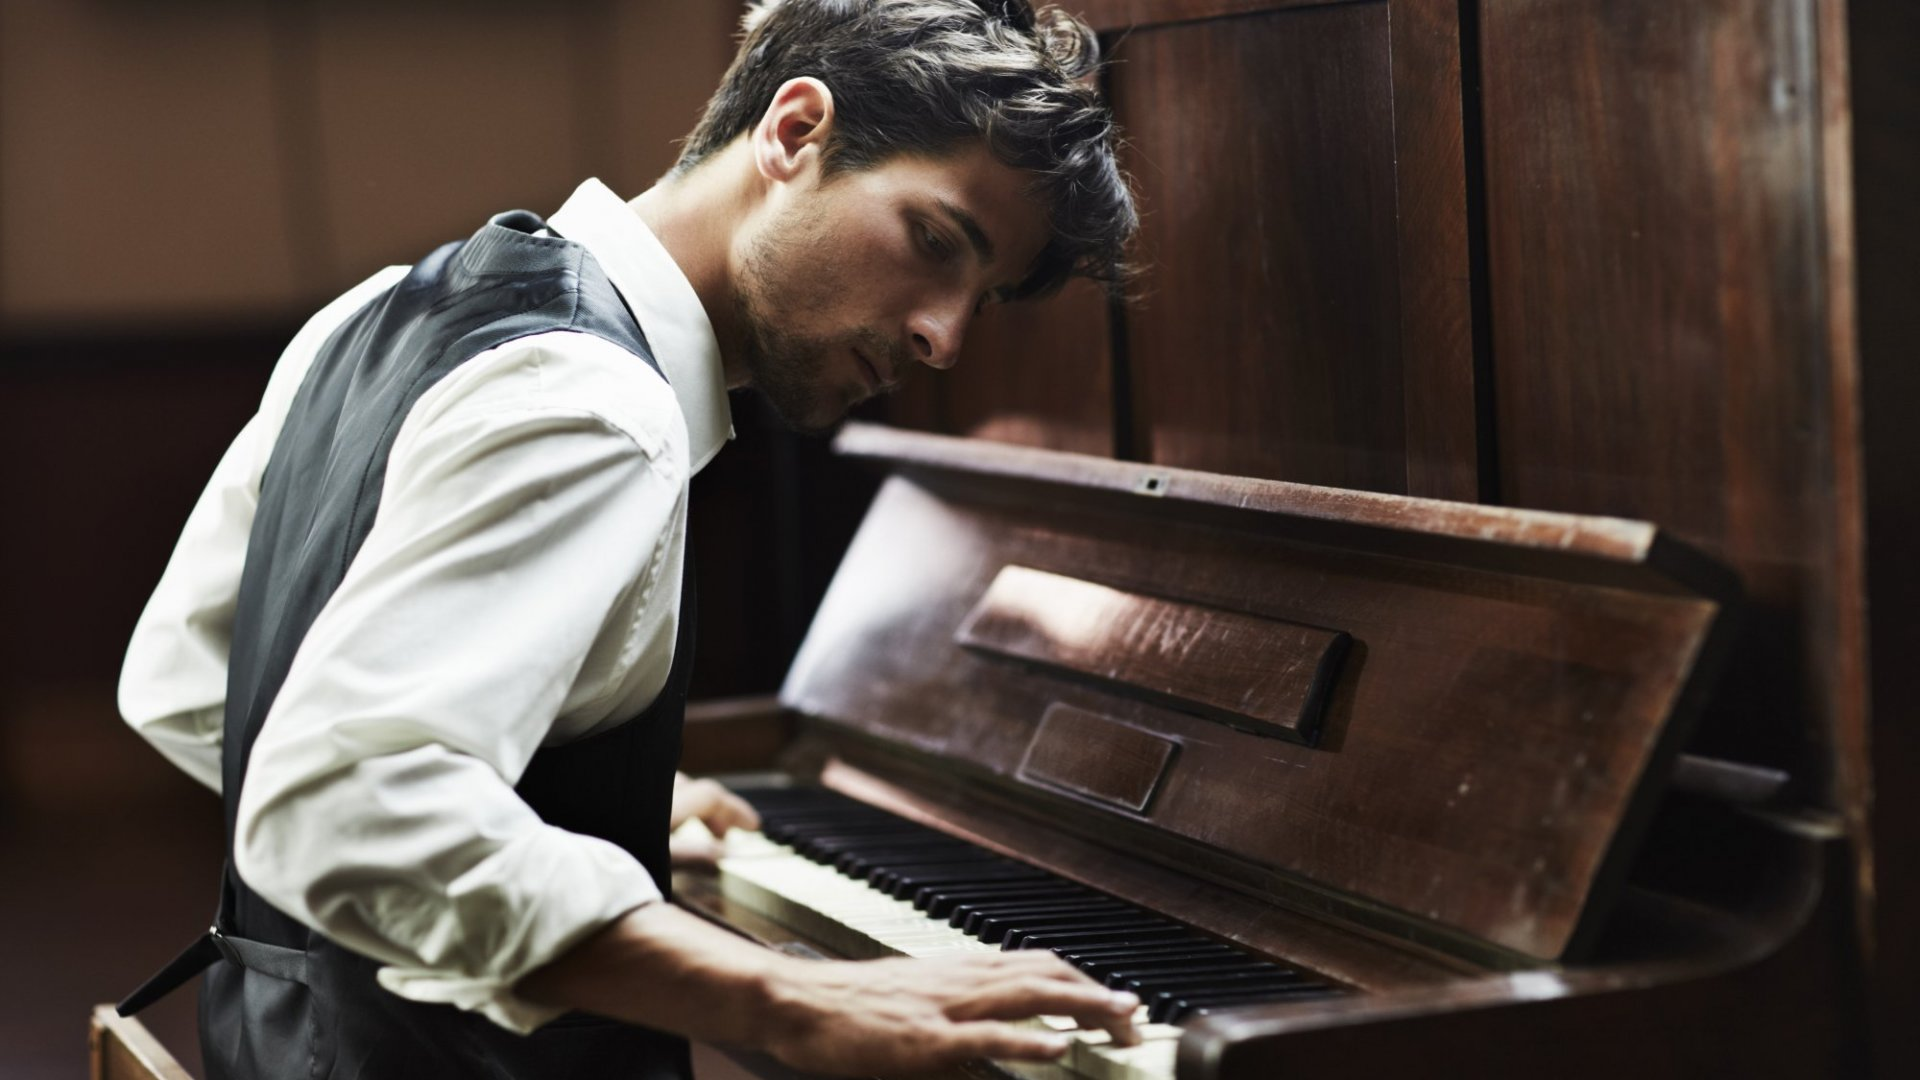 What 15 Years of Classical Piano Taught Me About Discipline (and Judging Your Own Potential)